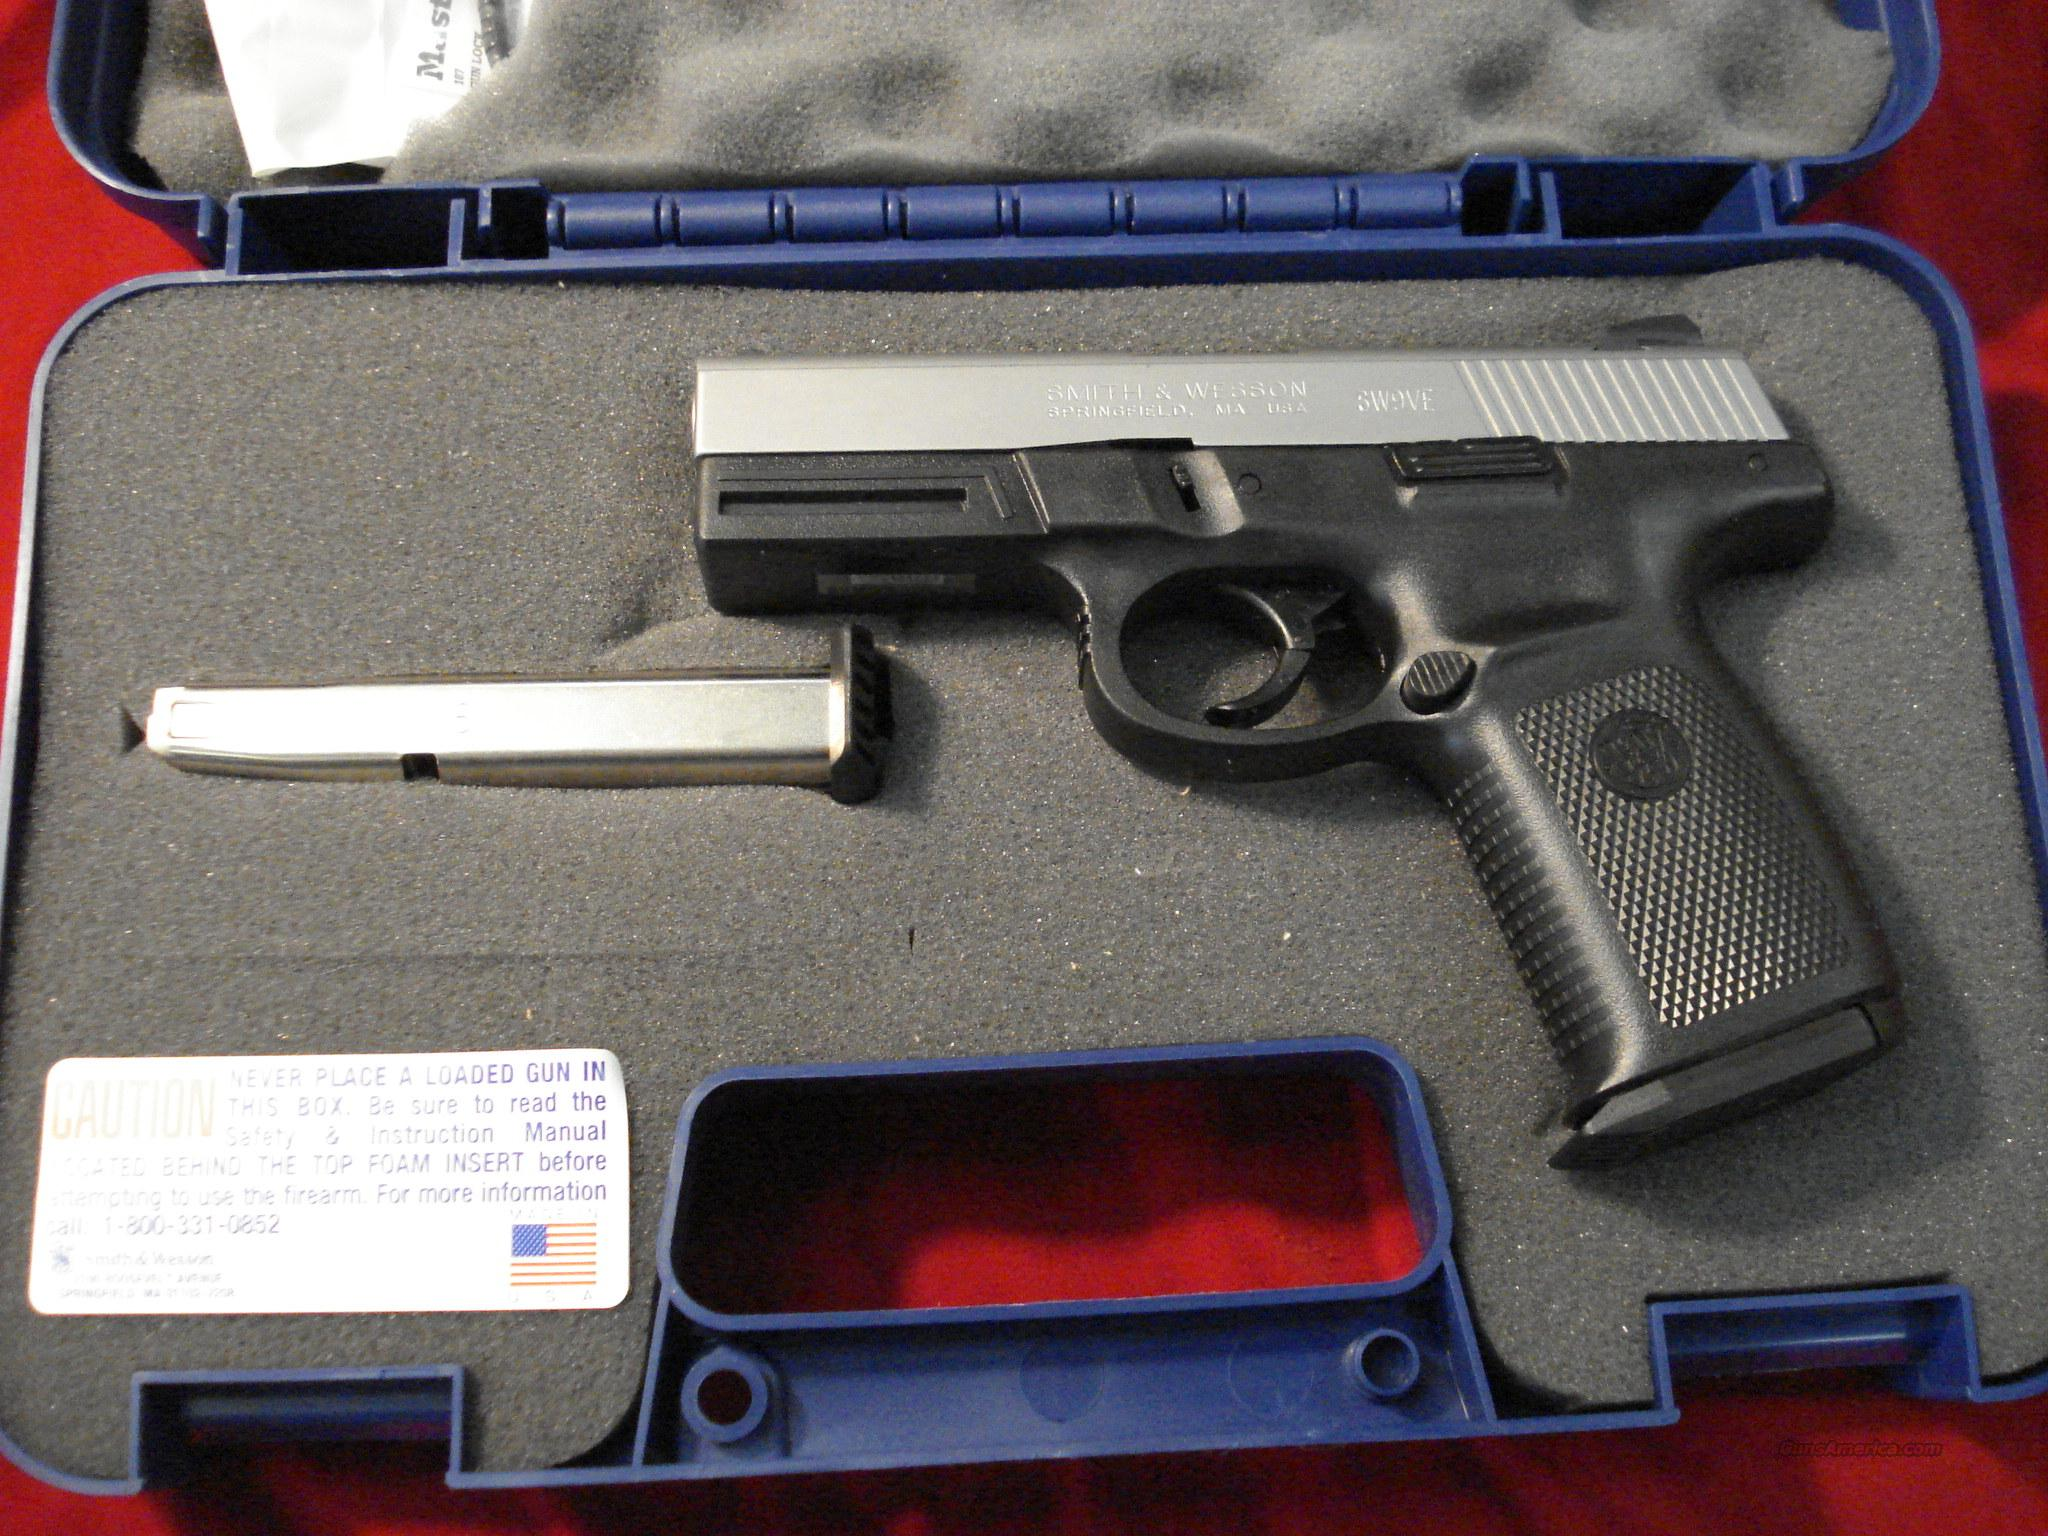 SMITH AND WESSON SIGMA STAINLESS 9MM HIGH CAP NEW    Guns > Pistols > Smith & Wesson Pistols - Autos > Polymer Frame